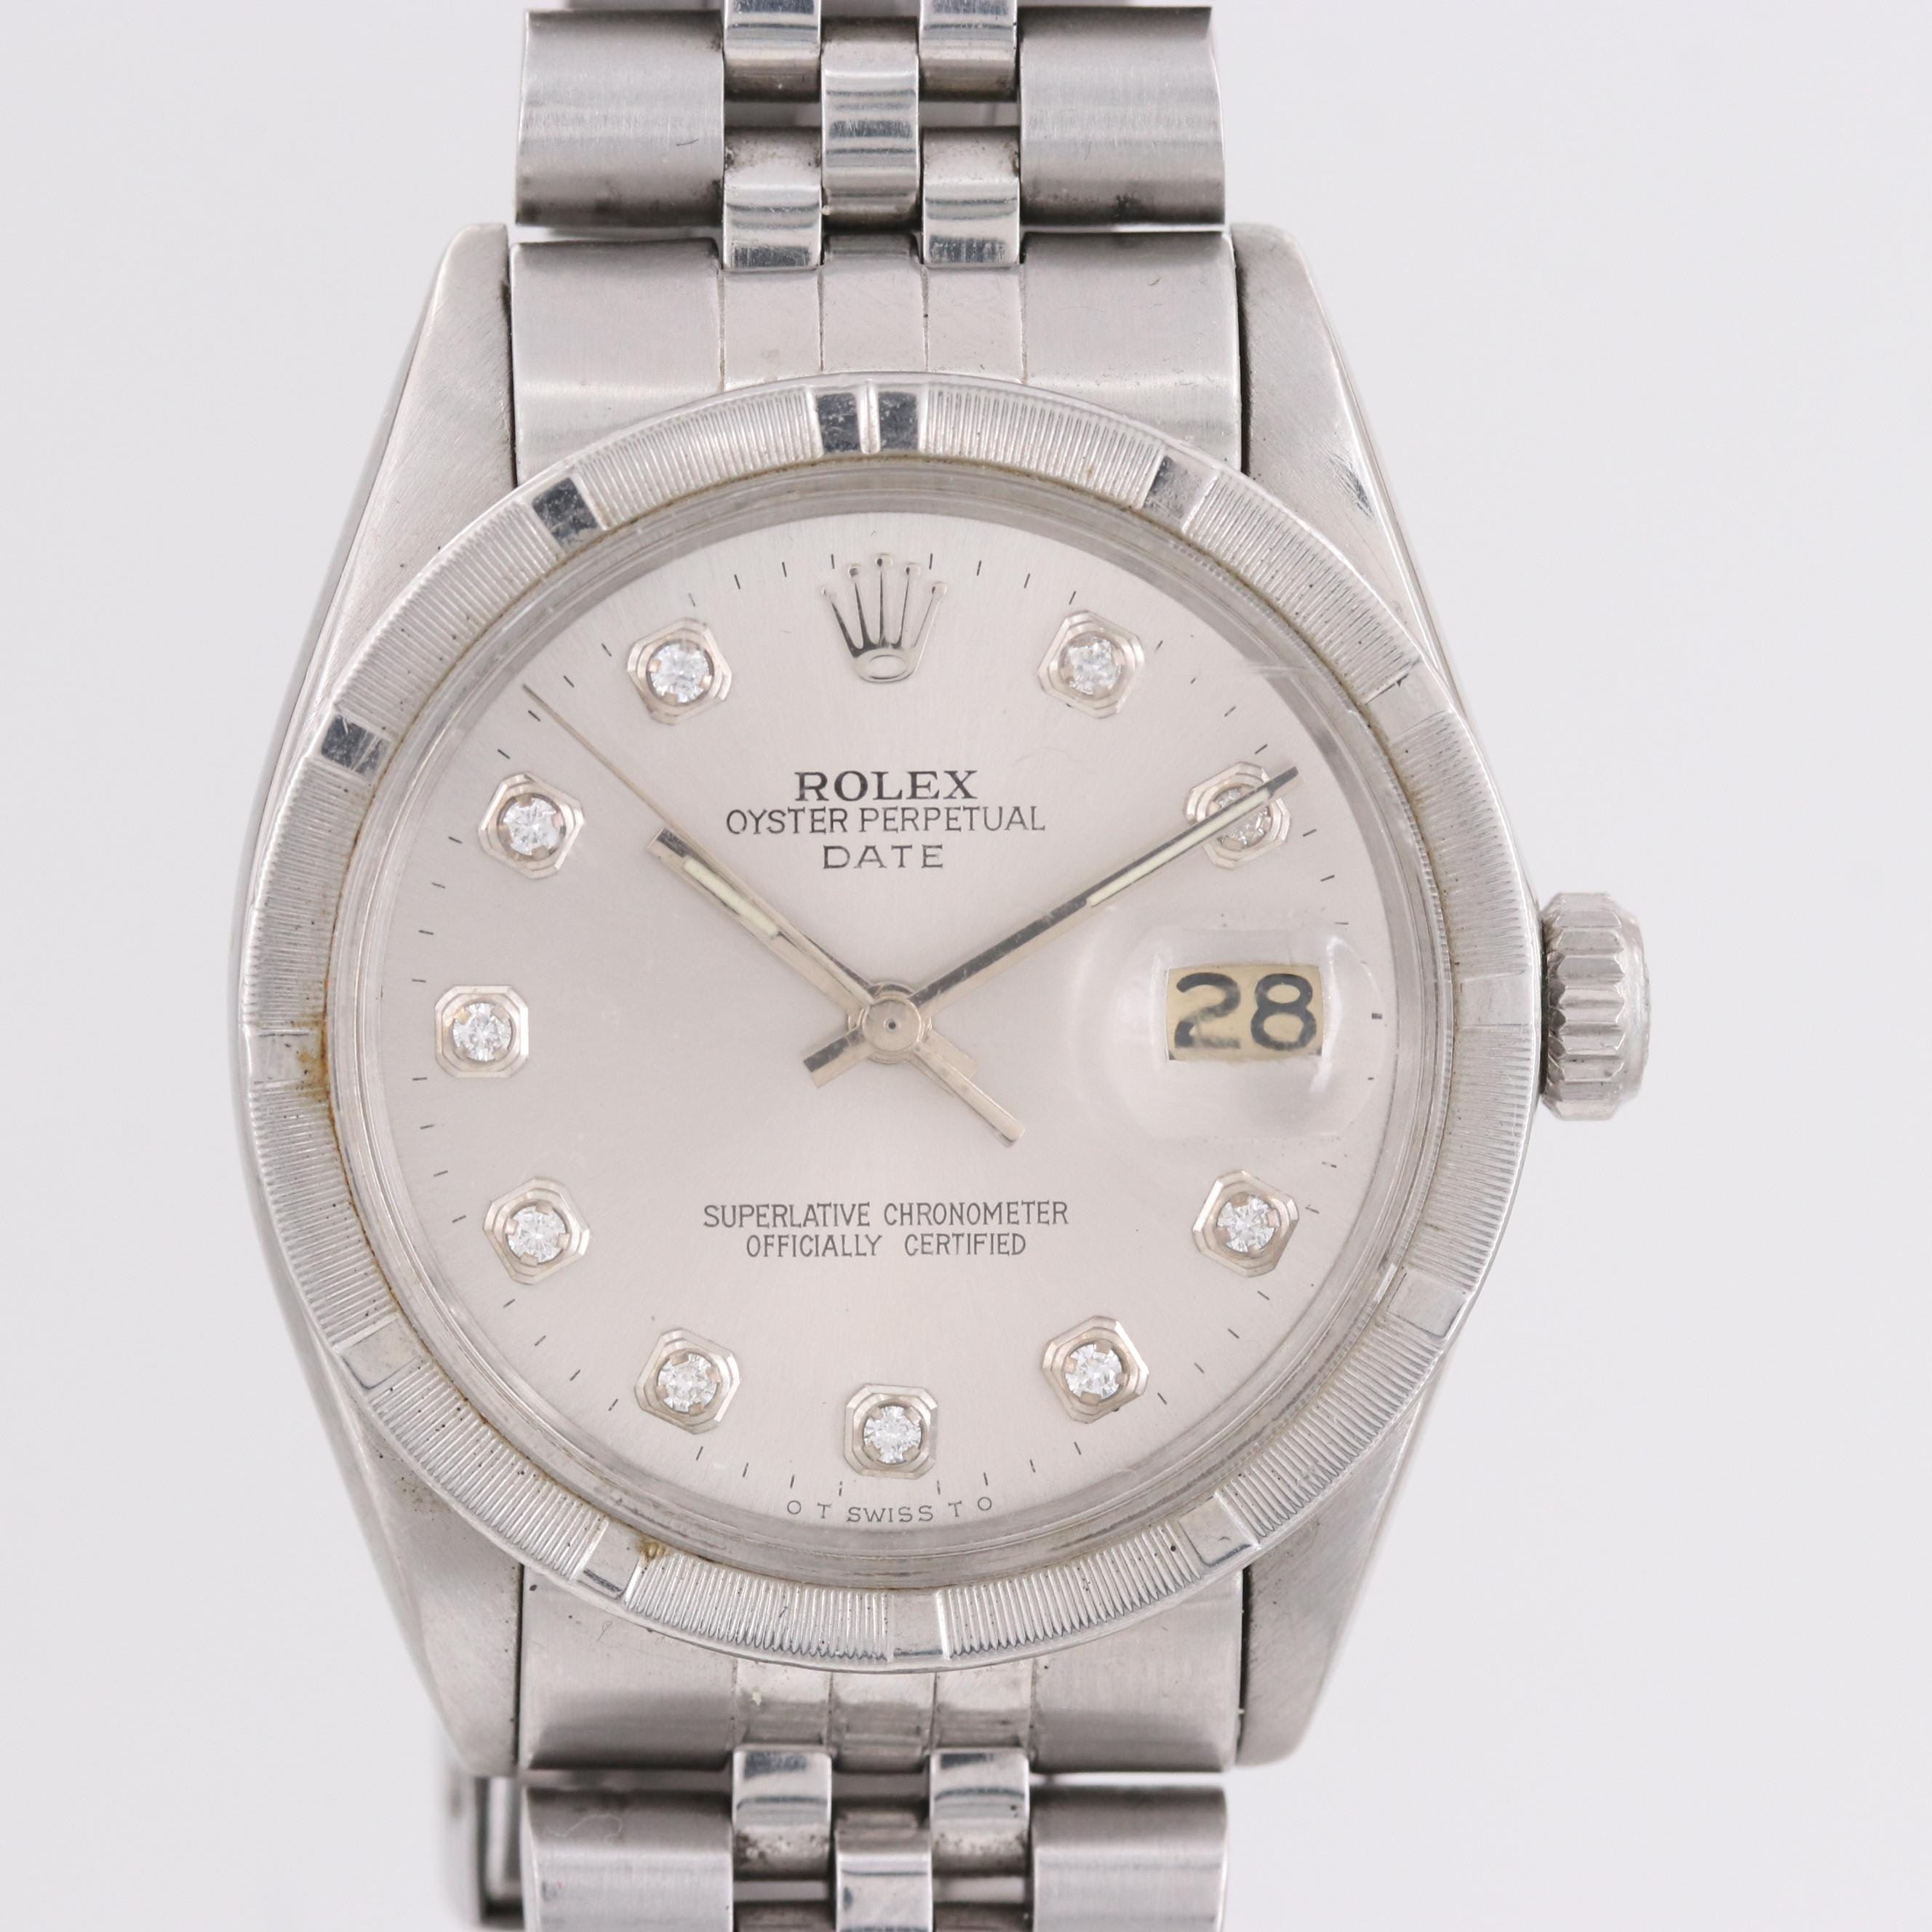 Rolex Stainless Steel Oyster-Perpetual Date Wristwatch With Diamond Dial, 1972